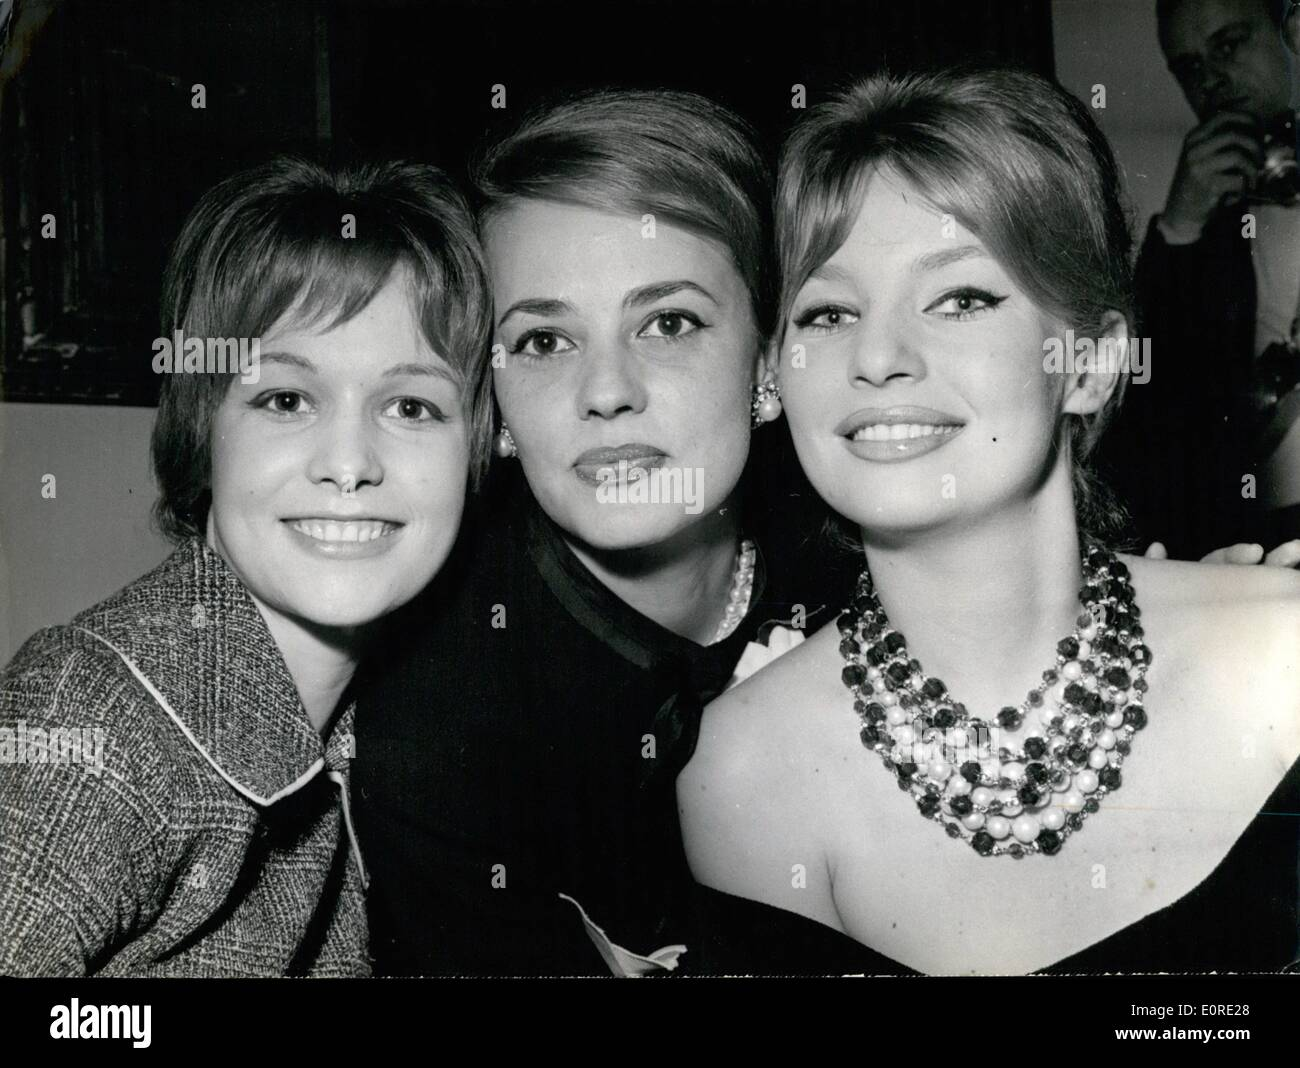 Feb. 02, 1959 - Starlet And Stars: Photo Shows The three actresses co-starring in Vadim's Film ''Les La Isons Dangereuses'' whose shooting will shortly begin in Paris. On left seventeen-year-old Jeanne Valerie who replaces the English school girl Gilliam Hills, too young for the role (June is only 14). In center, Jeanne Moreau and on left Annette Vadim, Vadim's wife. - Stock Image